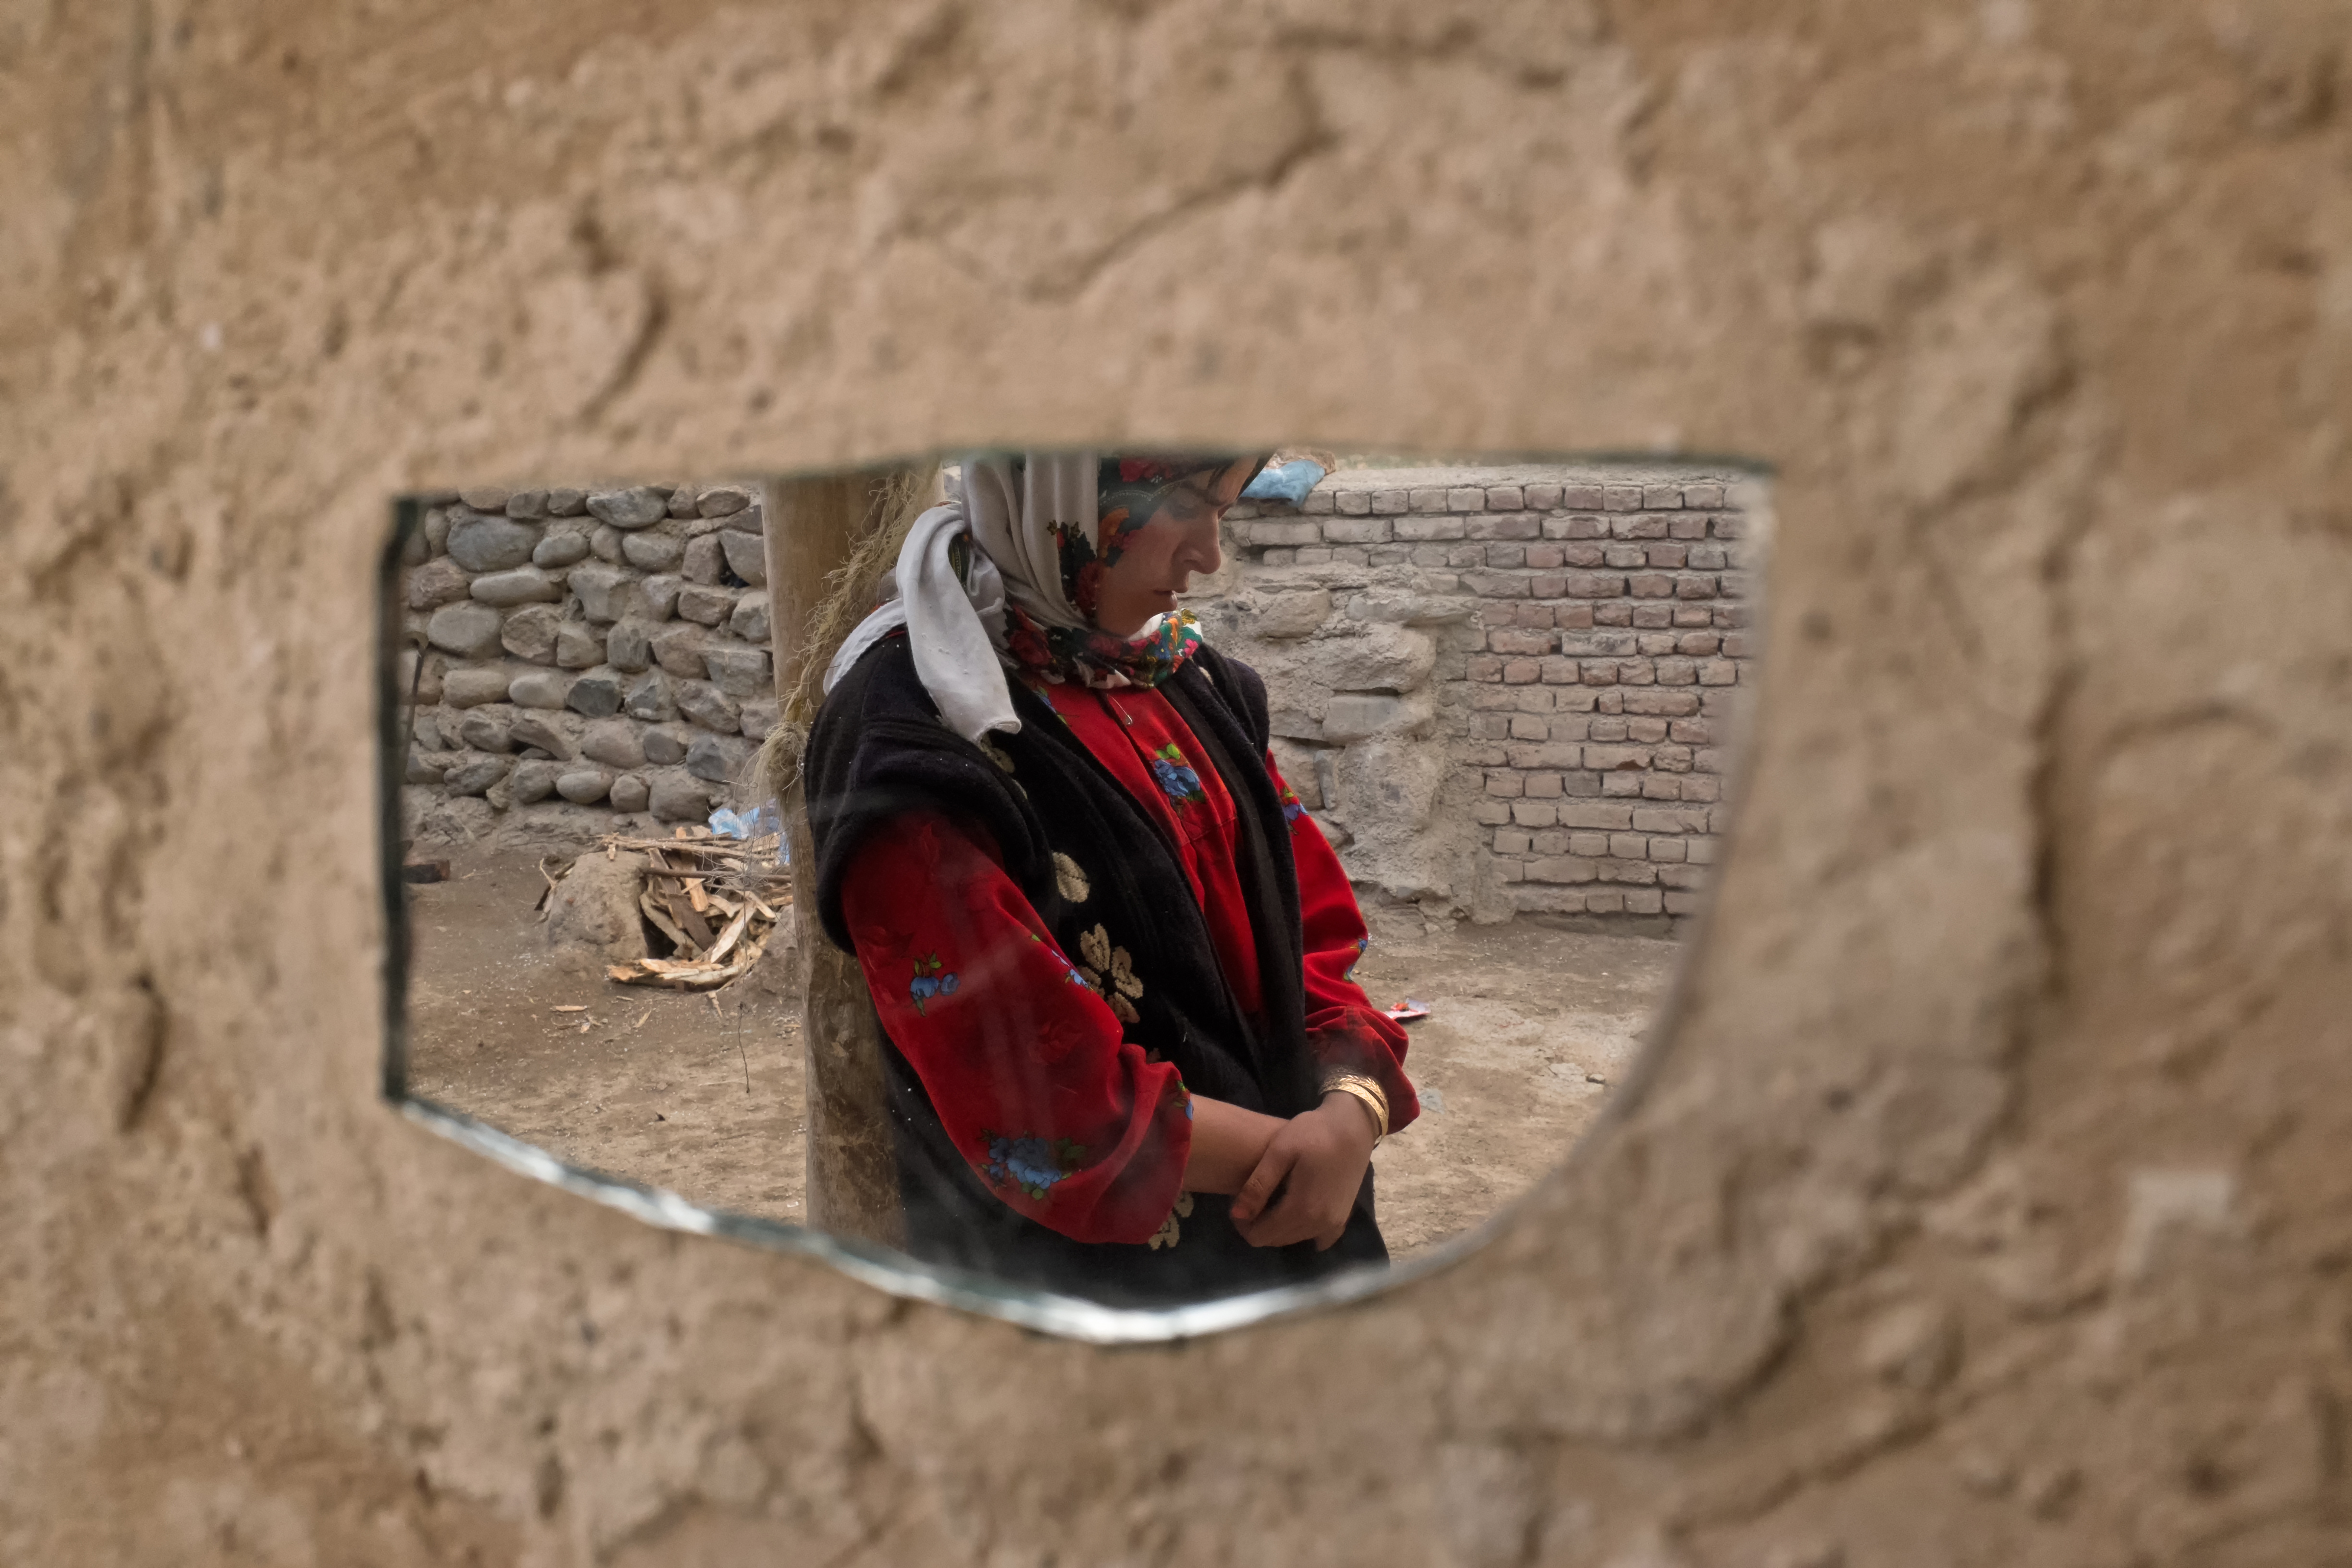 Roghayyeh leaning against a wodden pole and absorbed in her thoughts is reflected in a mirror on the mud wall. By losing her virginity she also lost hope for her future. Ajabshir, East Azerbaijan, Iran.